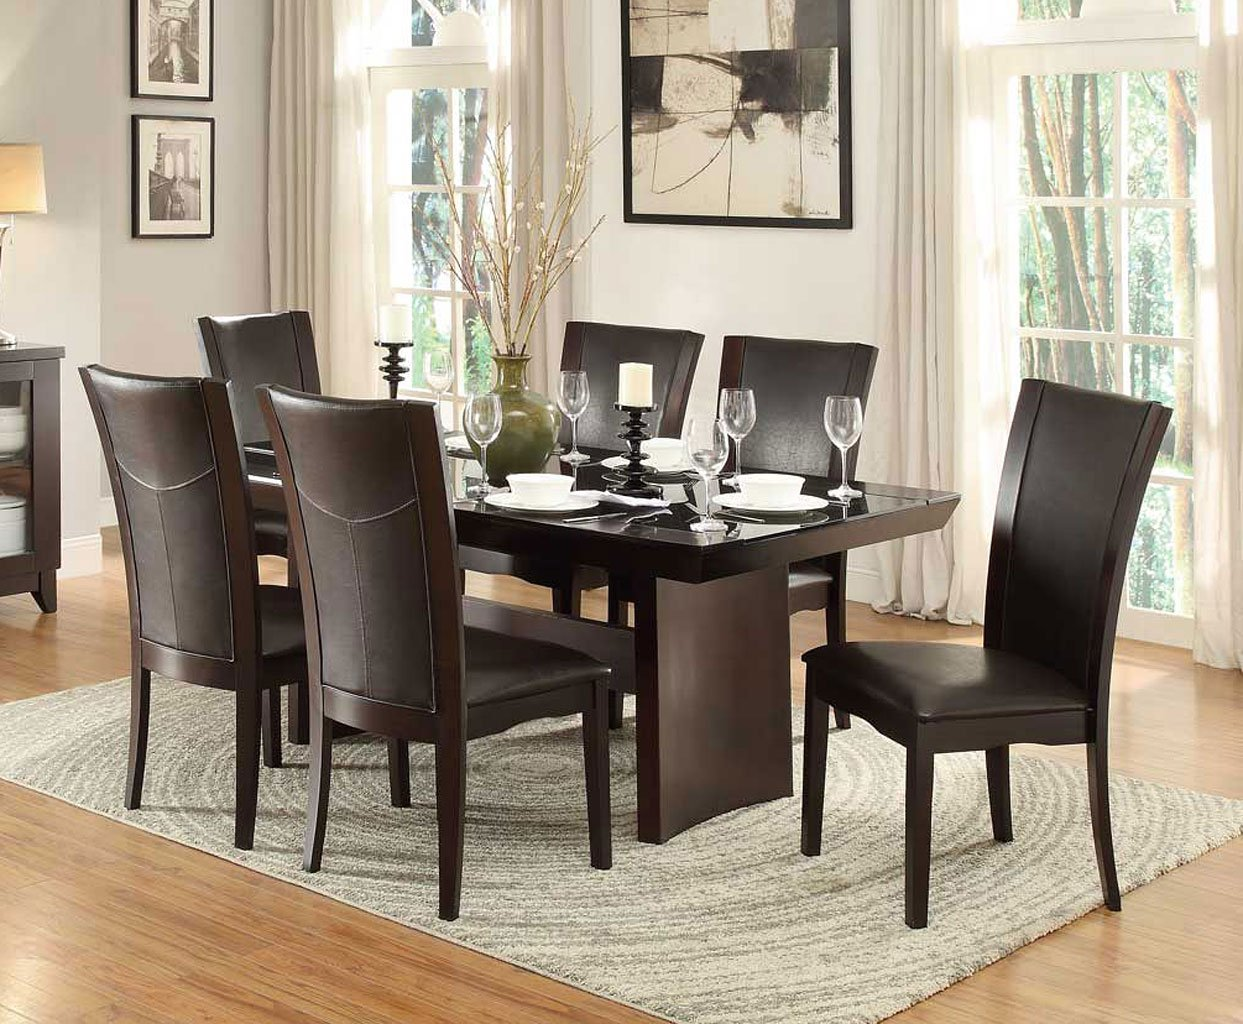 dining room set w dark brown chairs formal dining sets dining